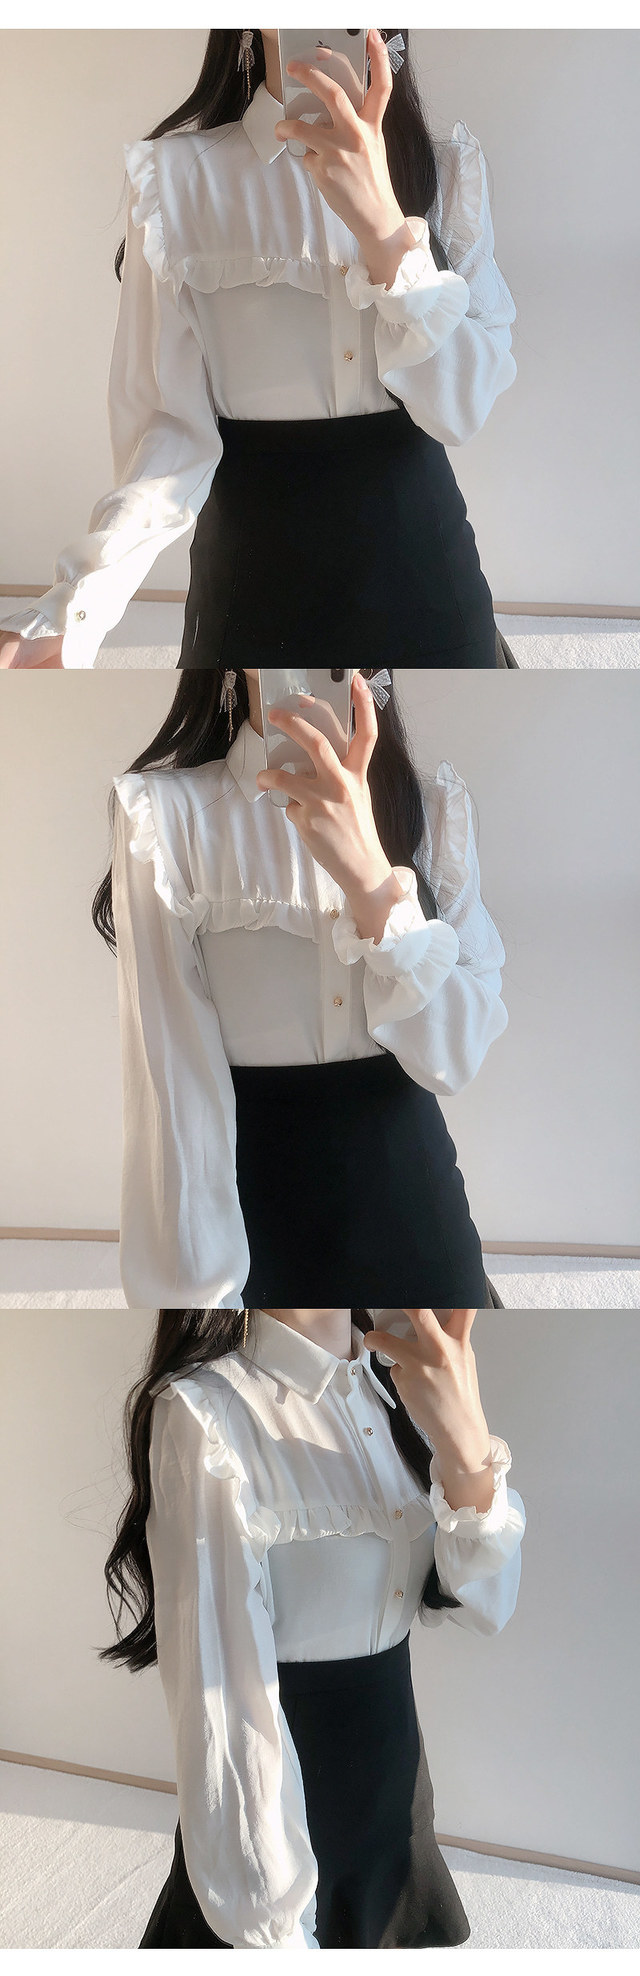 Merci frilly ribbon blouse